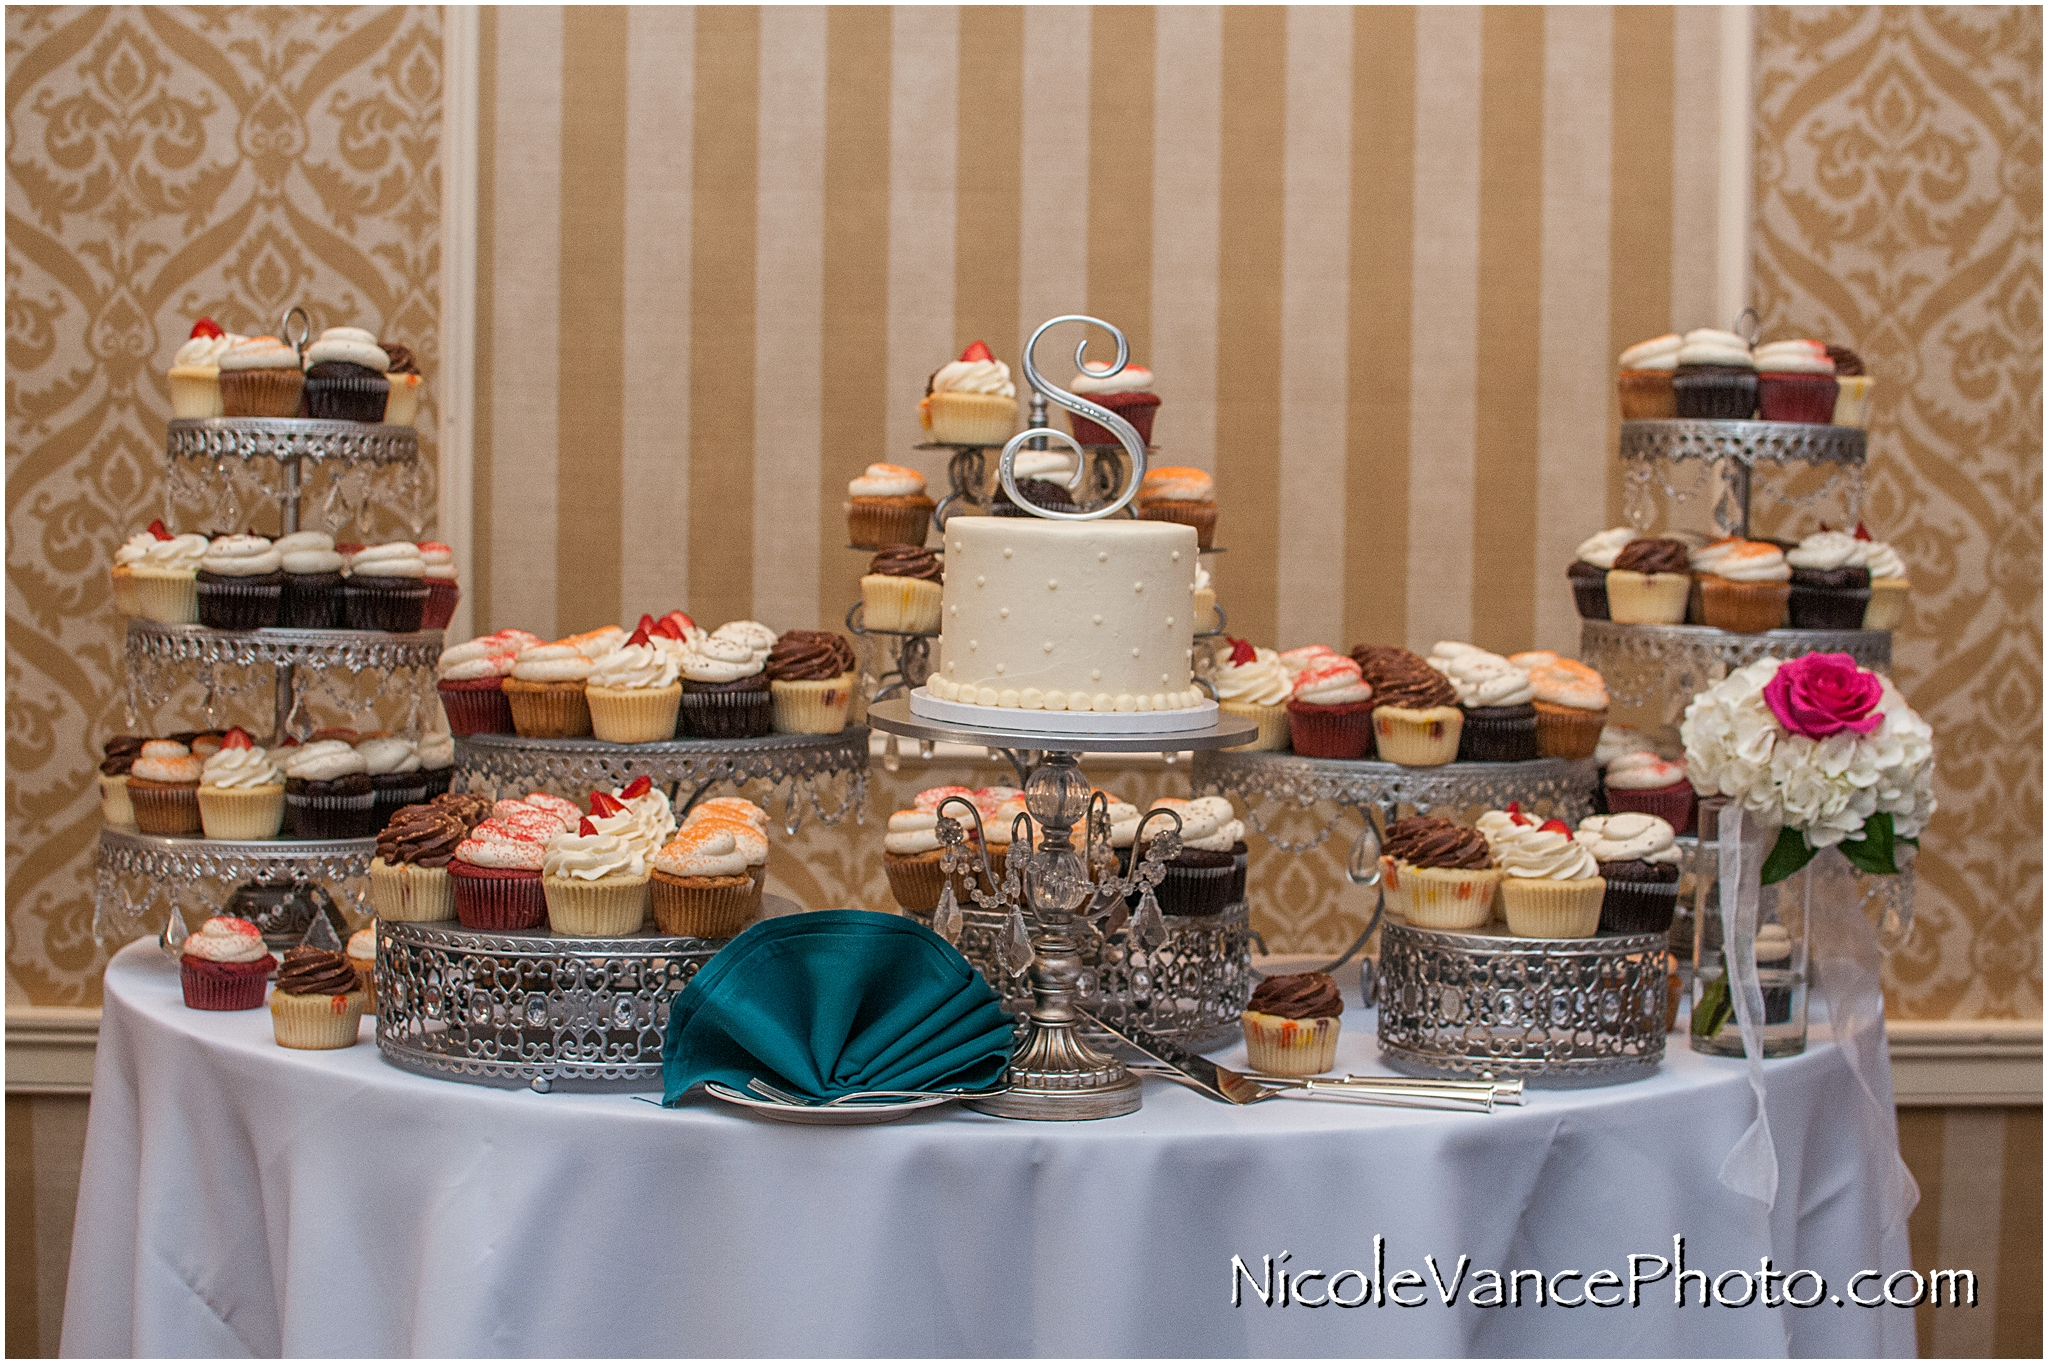 Wedding cake and cupcakes were provided by Pearl's cupcake shoppe.